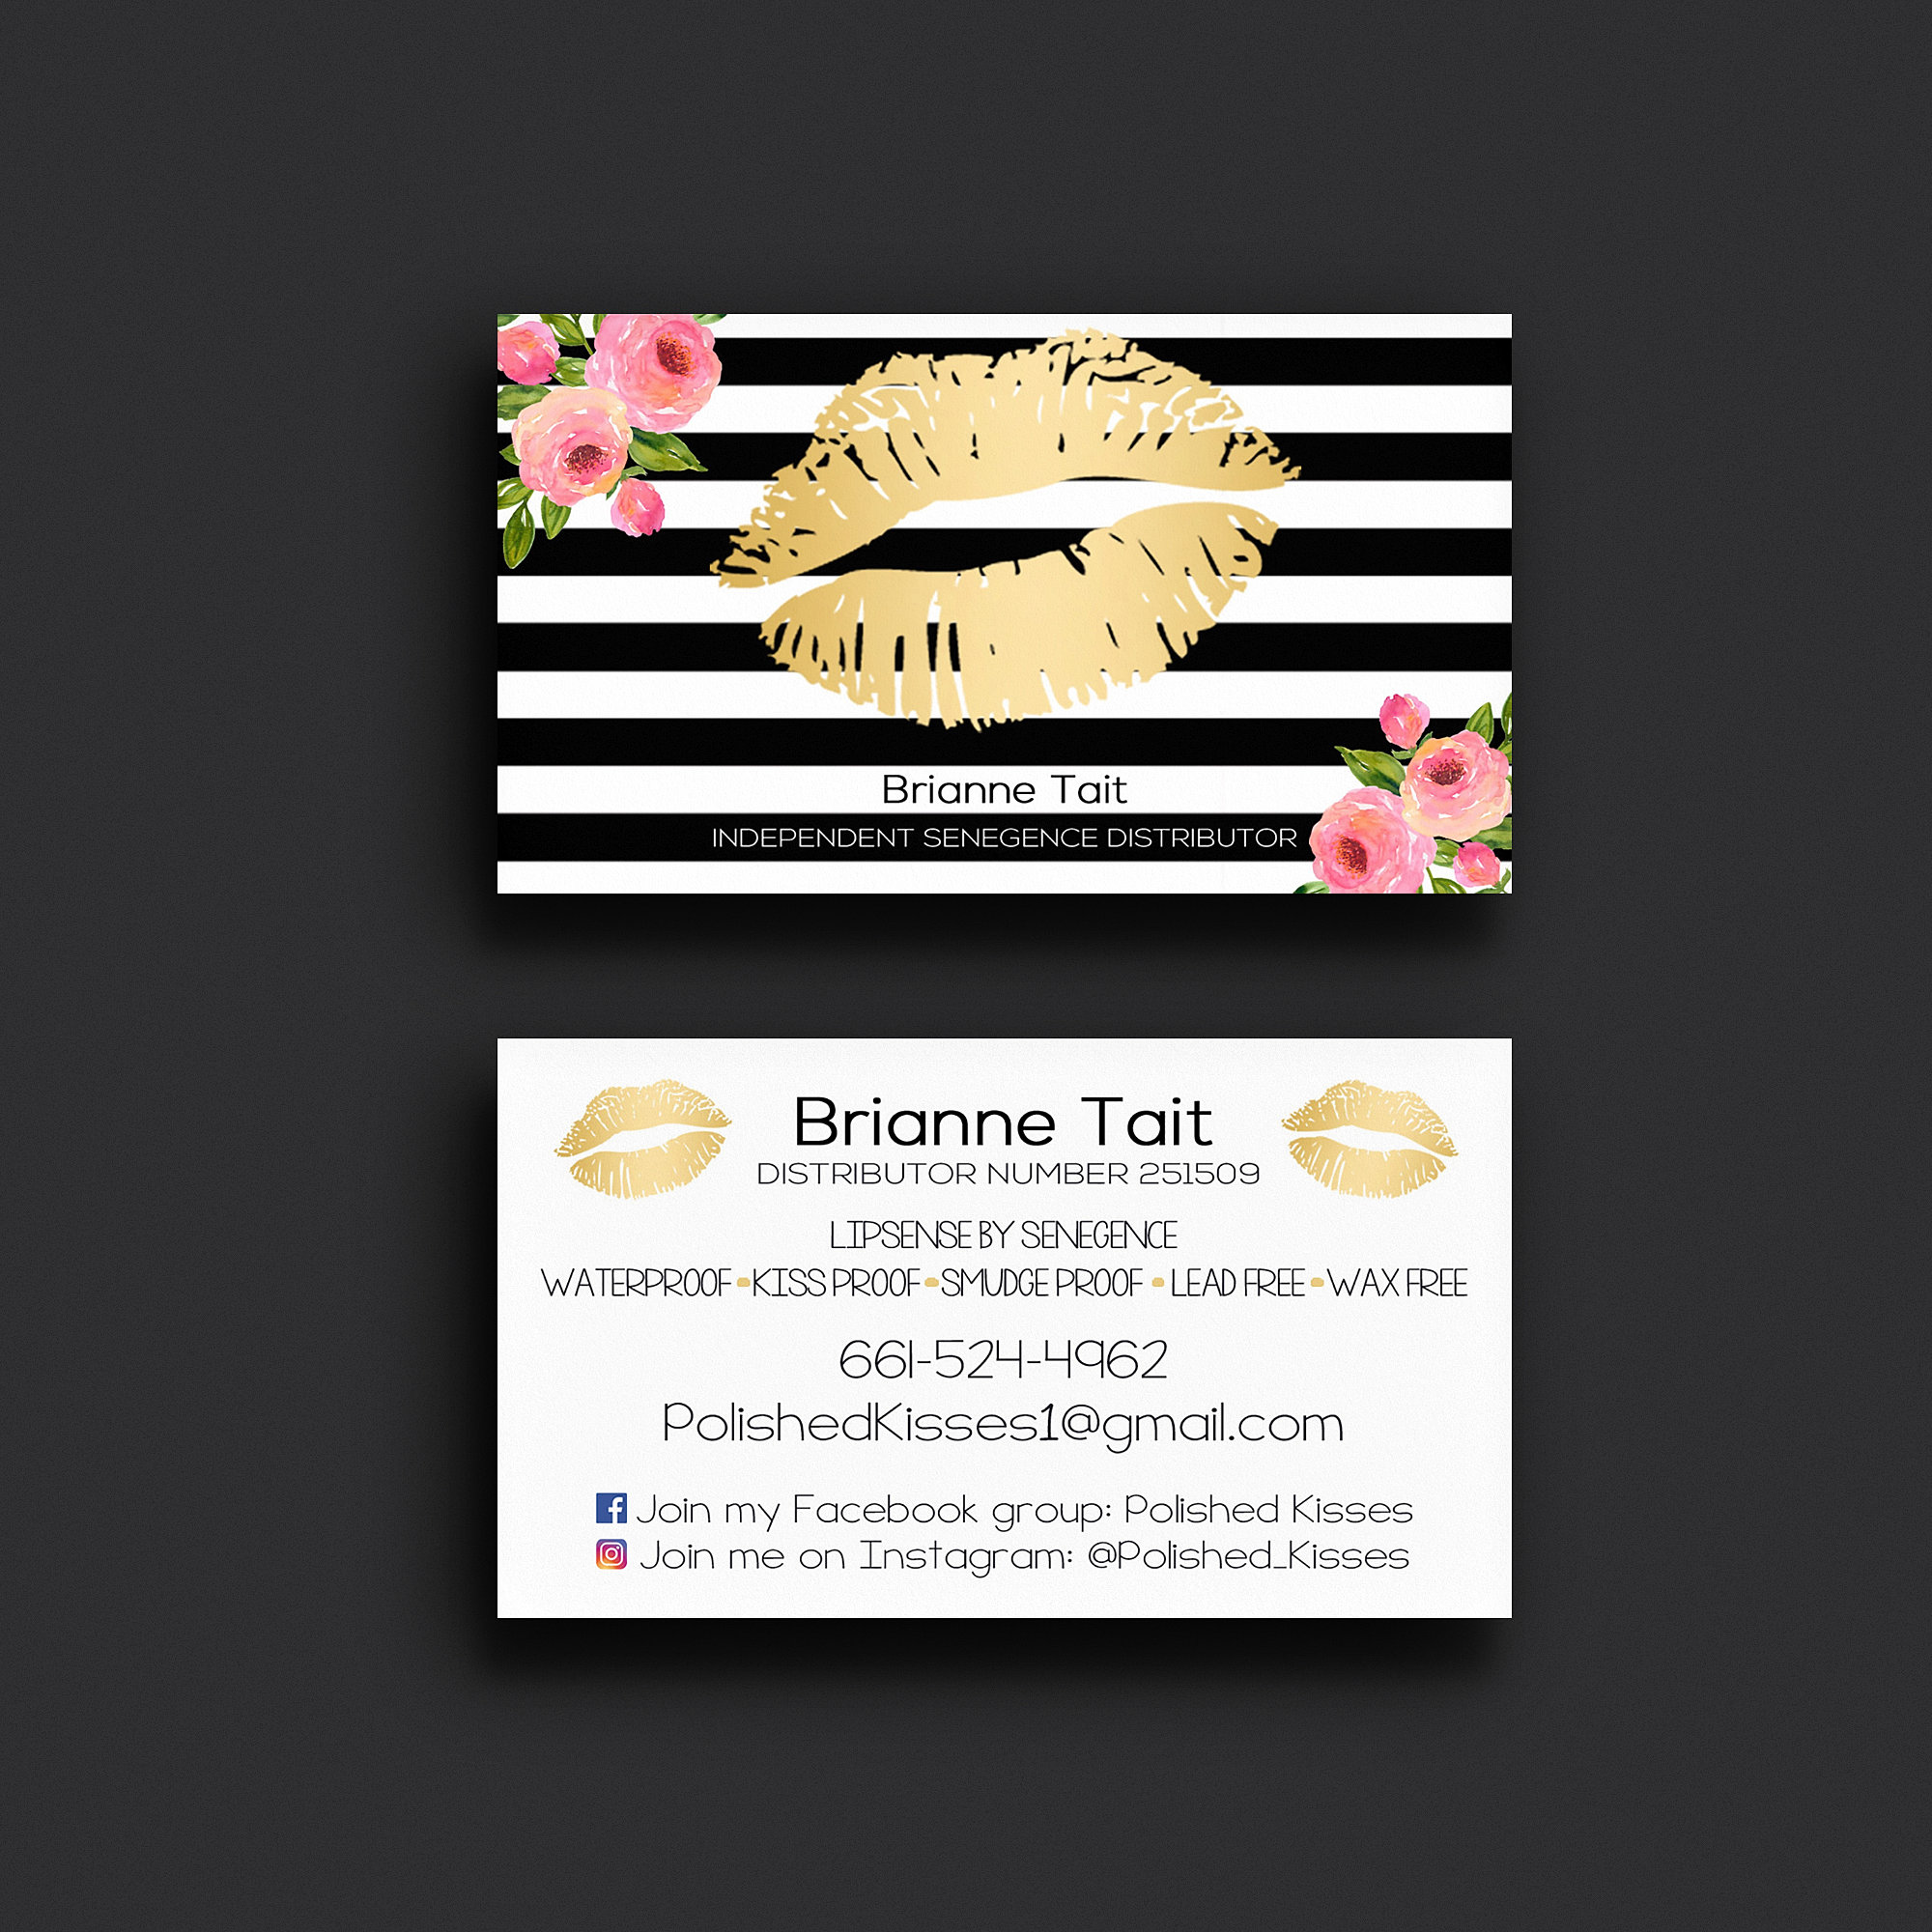 Ma design concepts bakersfield ca graphic design printing ma design concepts bakersfield ca graphic design printing lipsense business card reheart Images